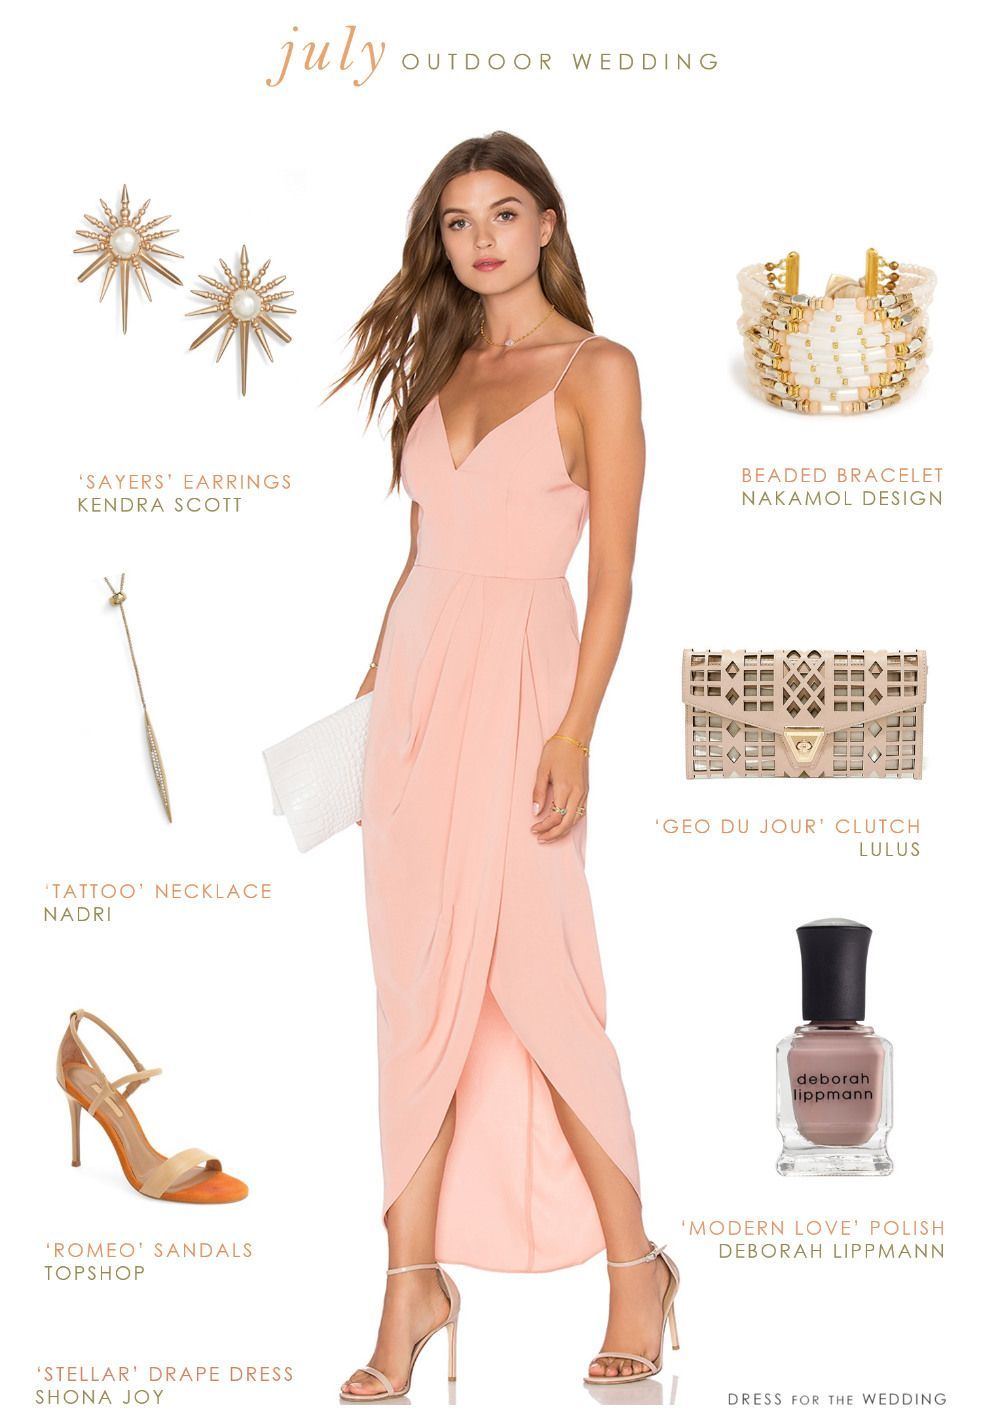 Our Latest Outfit Idea Featuring A Beautiful Versatile Dress To Wear To An Outdoo Wedding Guest Dress Summer Outdoor Wedding Outfit Wedding Guest Outfit Summer [ 1428 x 1000 Pixel ]